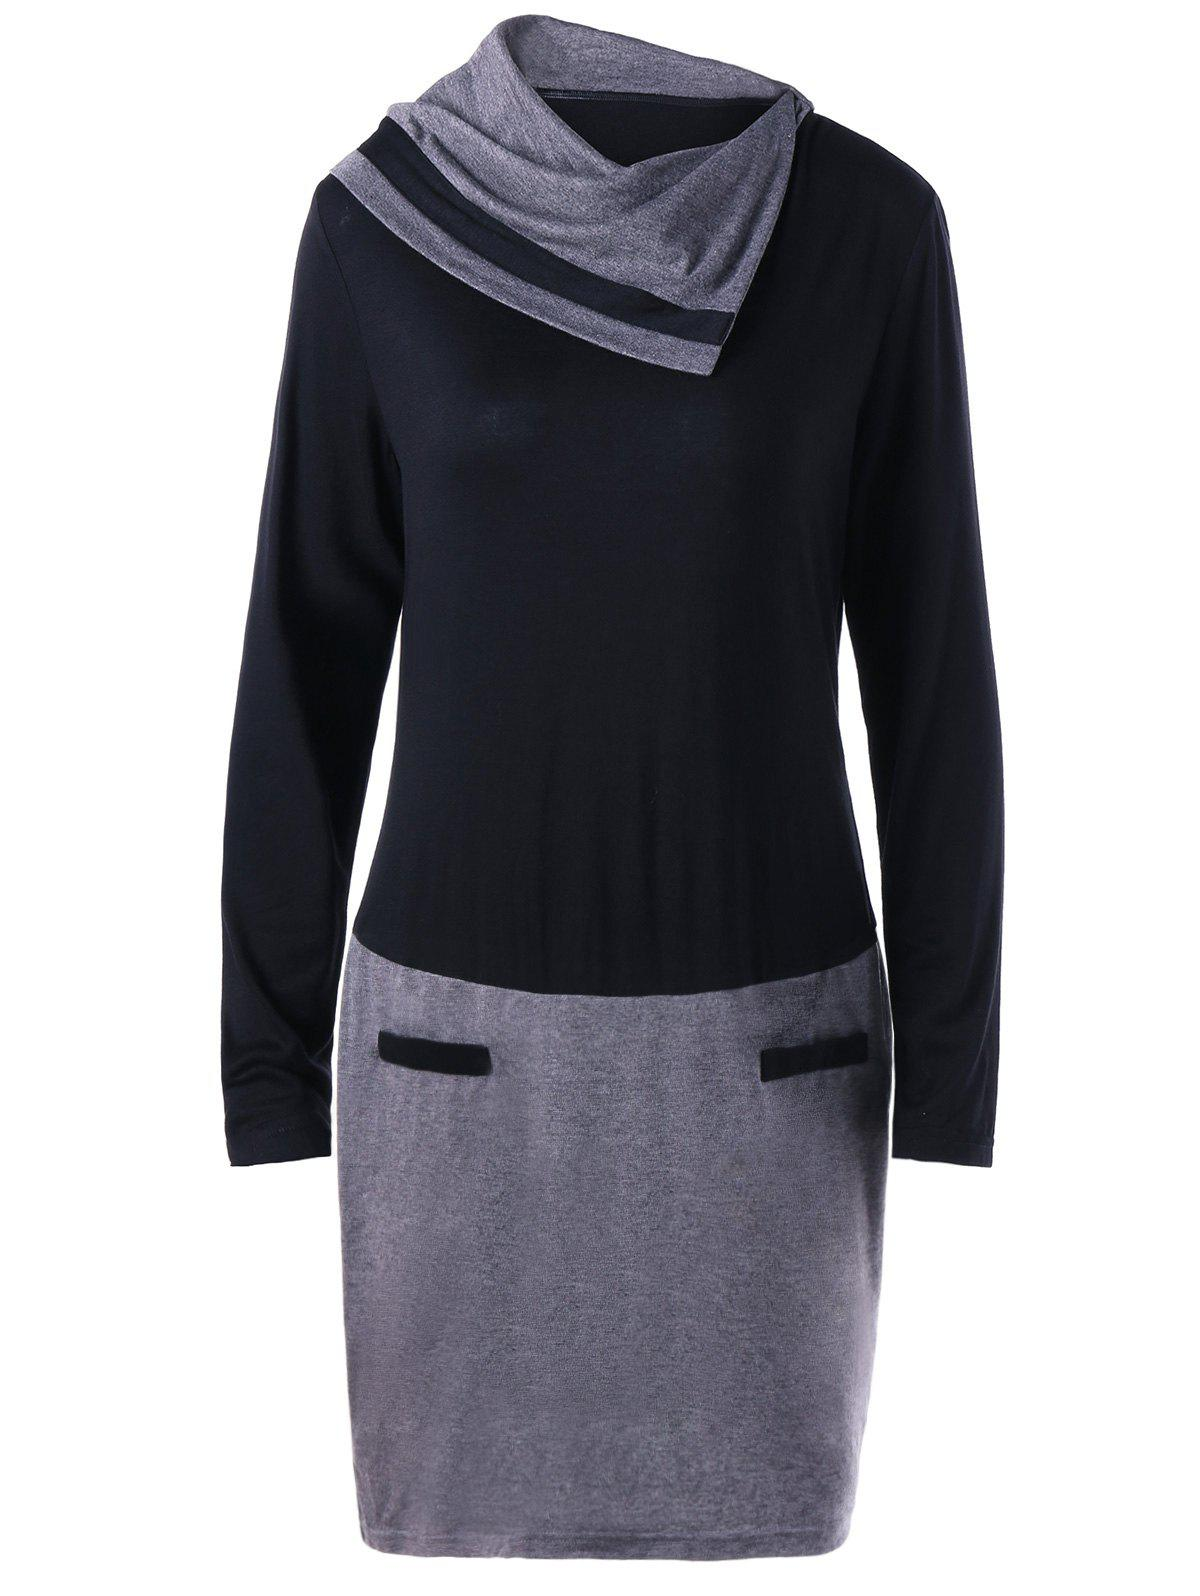 Long Sleeve Plus Size Fitted DressWOMEN<br><br>Size: XL; Color: BLACK AND GREY; Style: Casual; Material: Cotton,Spandex; Silhouette: Sheath; Dresses Length: Knee-Length; Neckline: Heaps Collar; Sleeve Length: Long Sleeves; Embellishment: Panel; Pattern Type: Others; With Belt: No; Season: Fall,Spring; Weight: 0.3500kg; Package Contents: 1 x Dress;